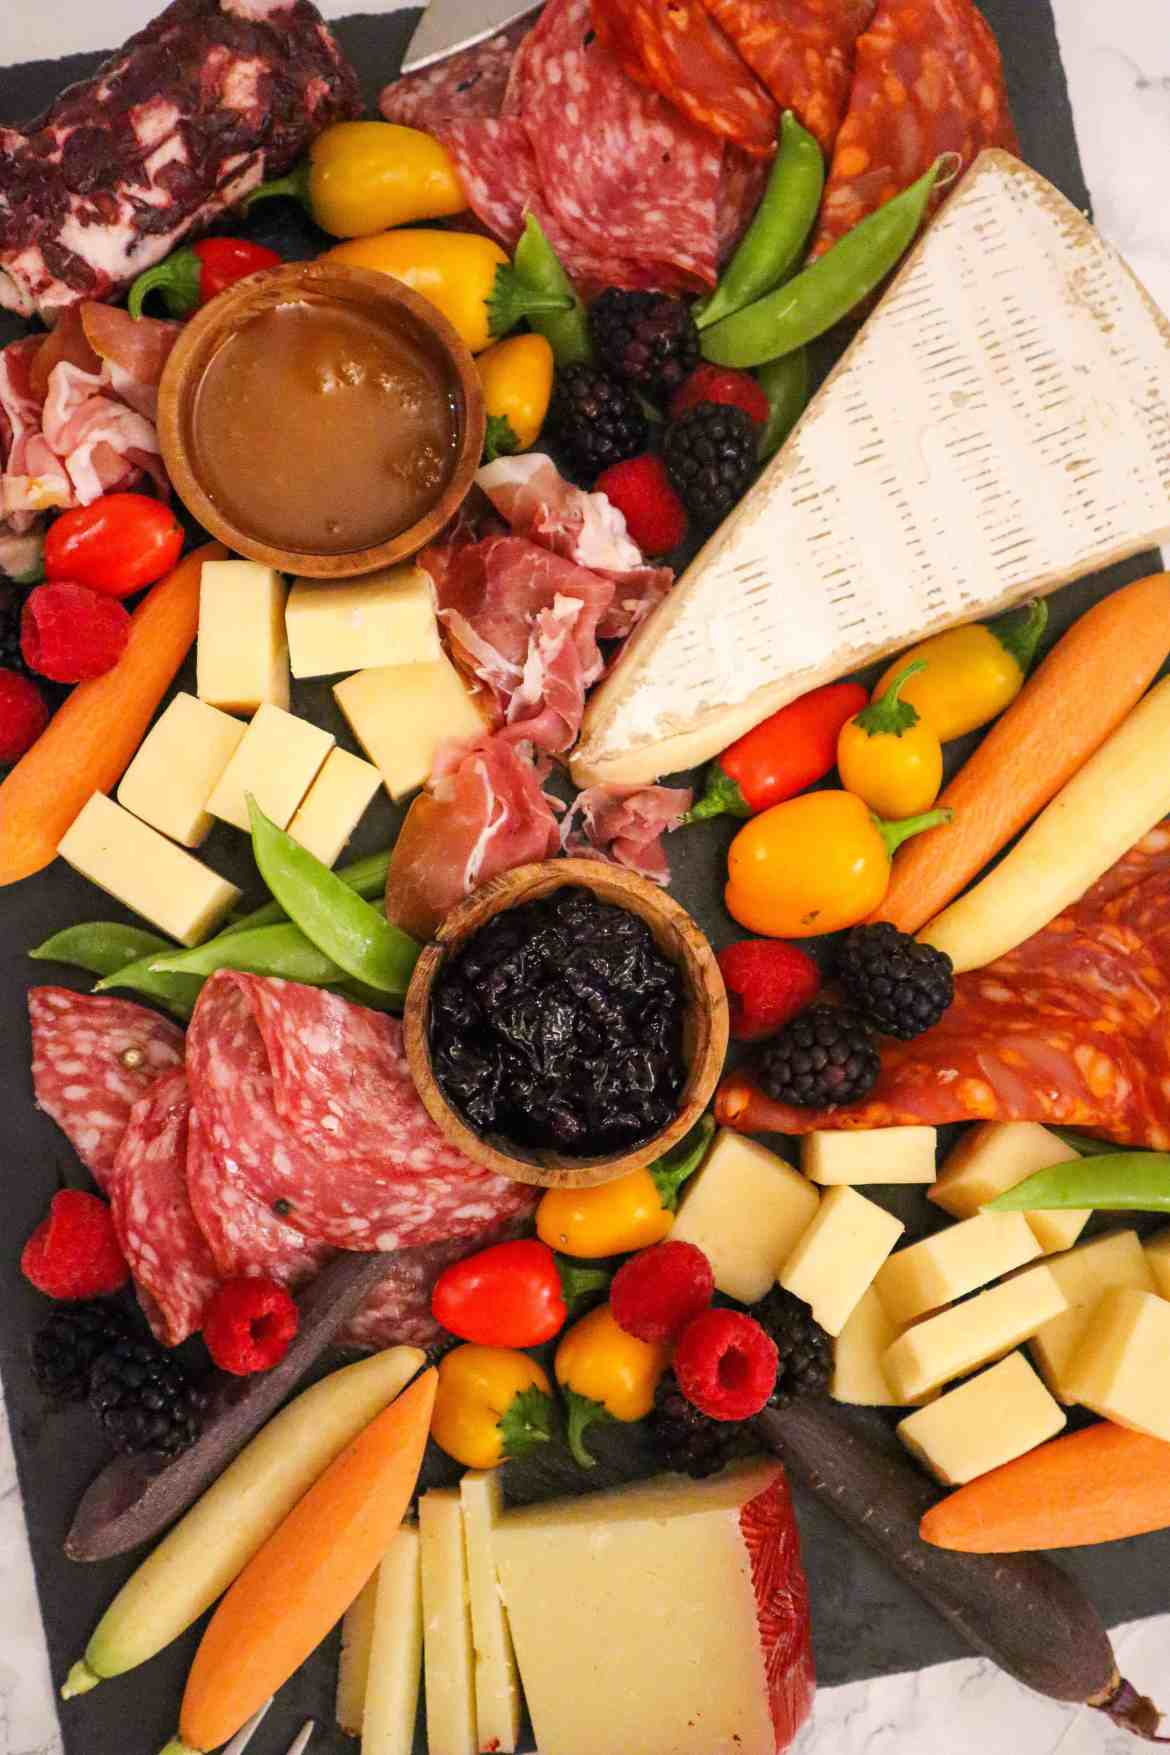 How to make a charcuterie board at home